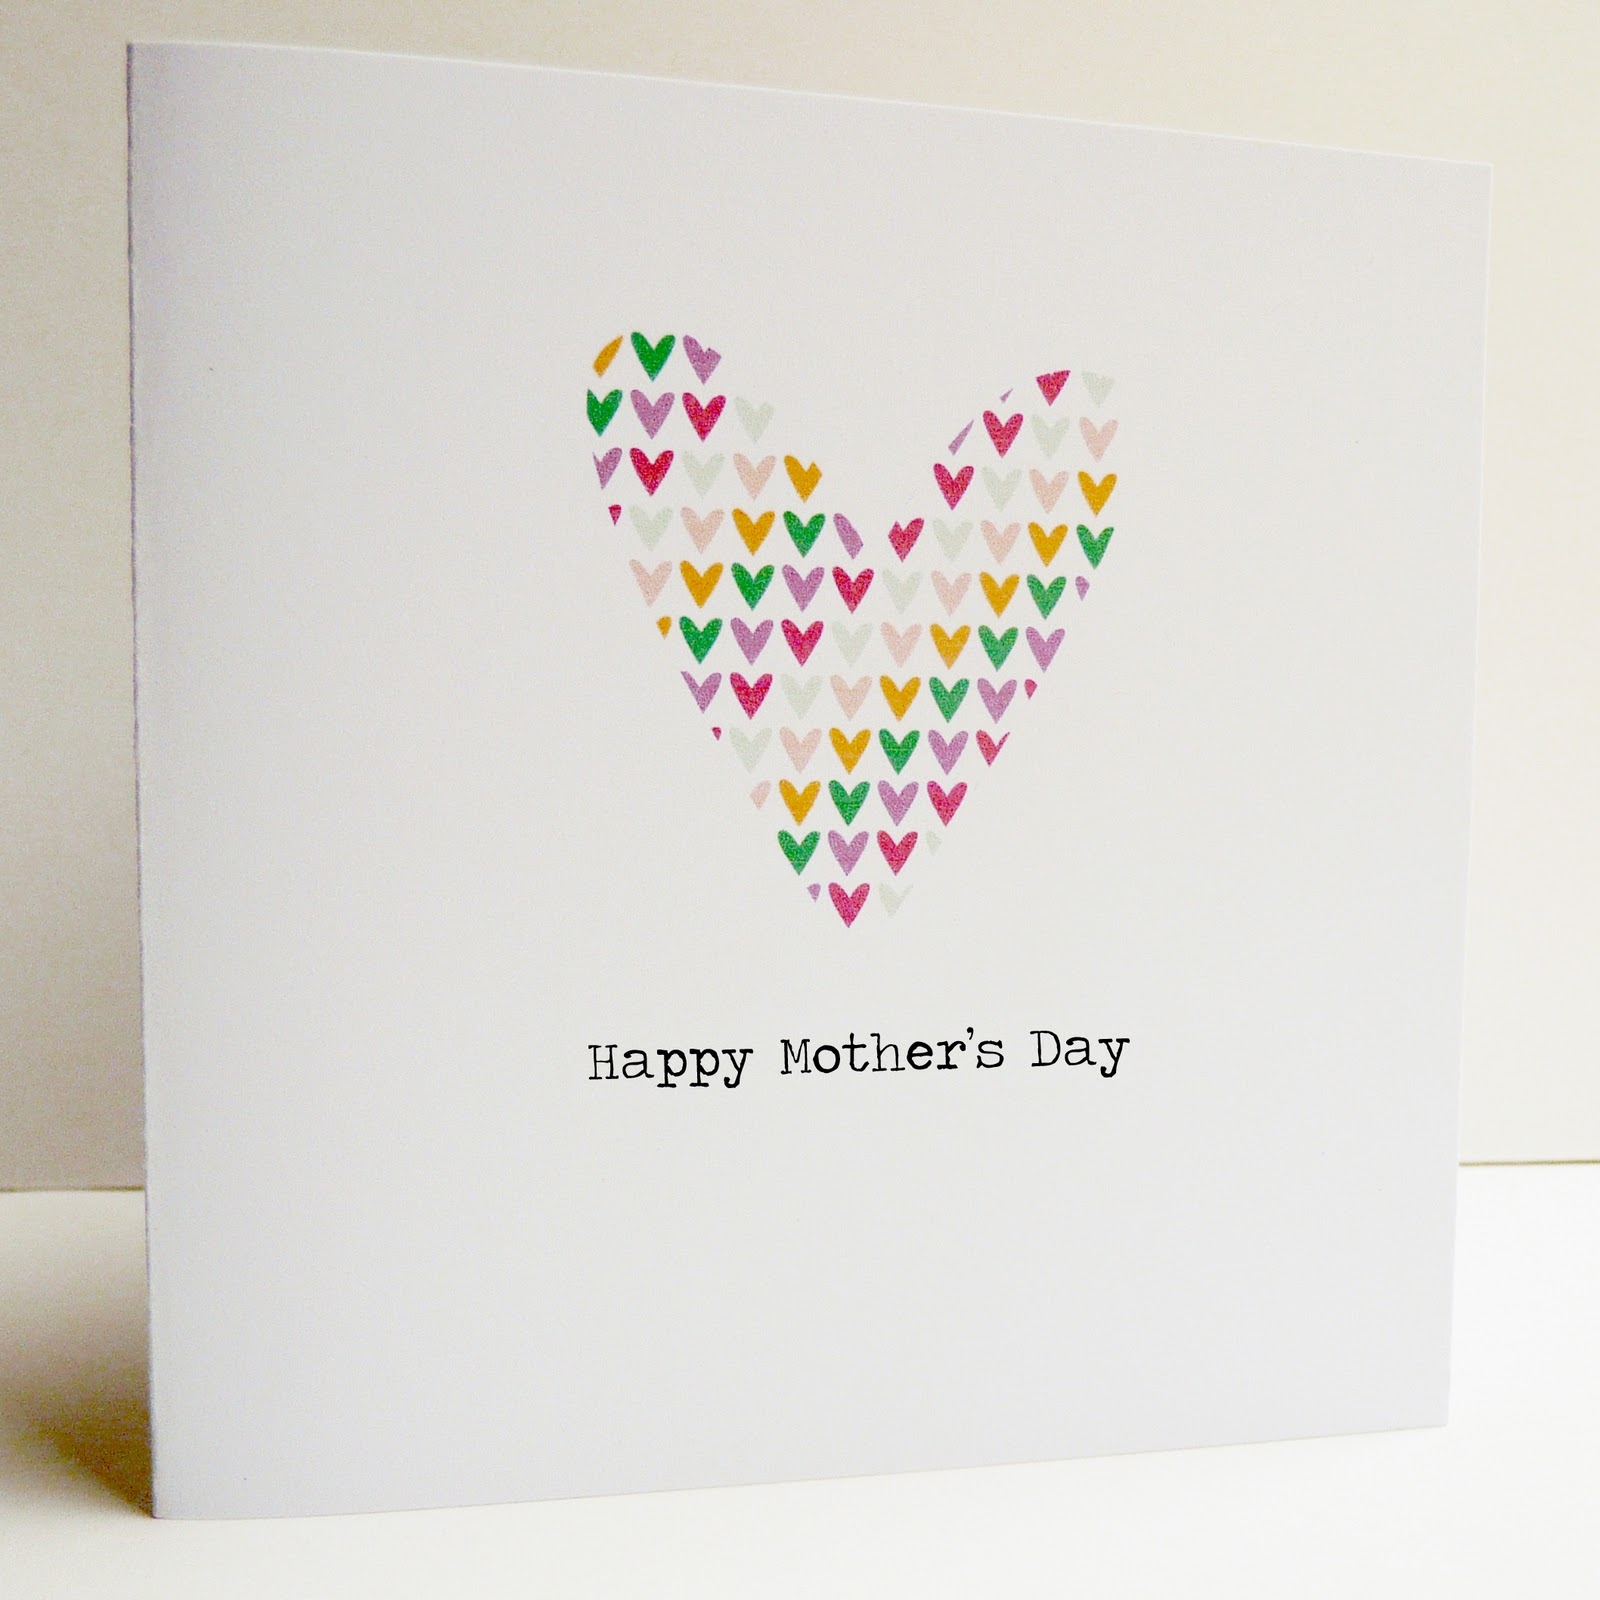 Mothers Day Greetings To Impress Mums Everywhere